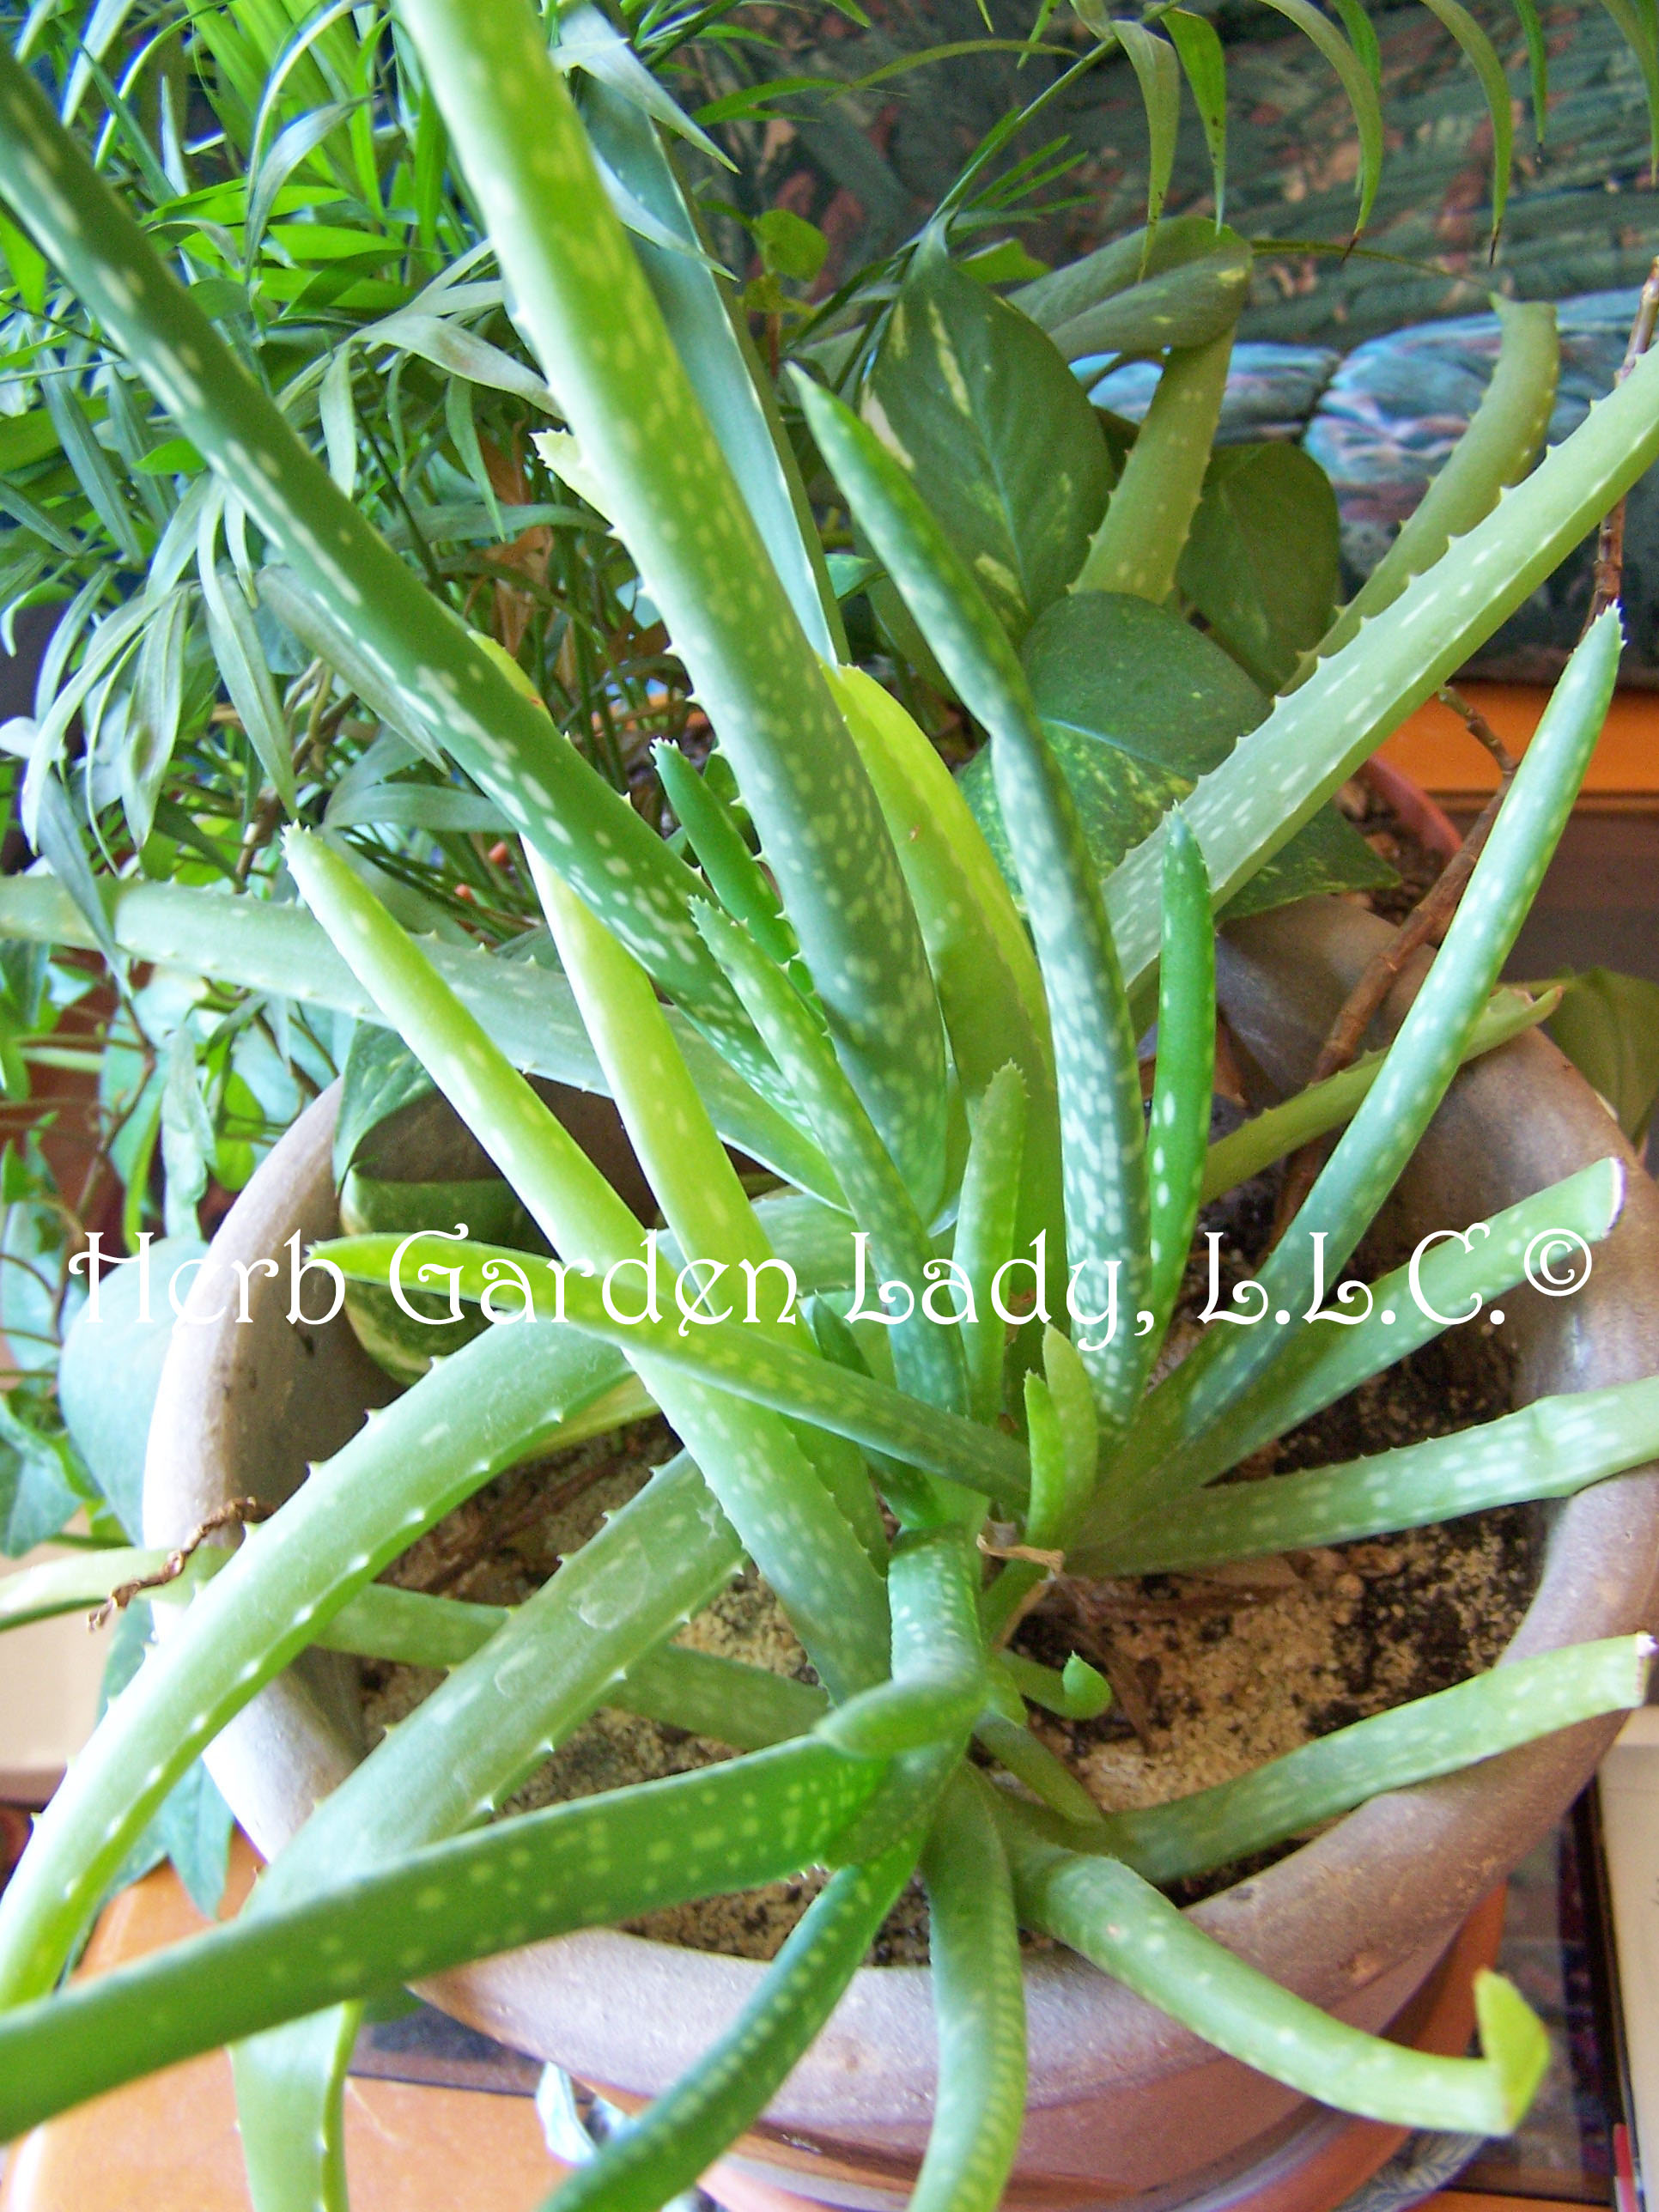 Aloe Vera herb used in my soaps.